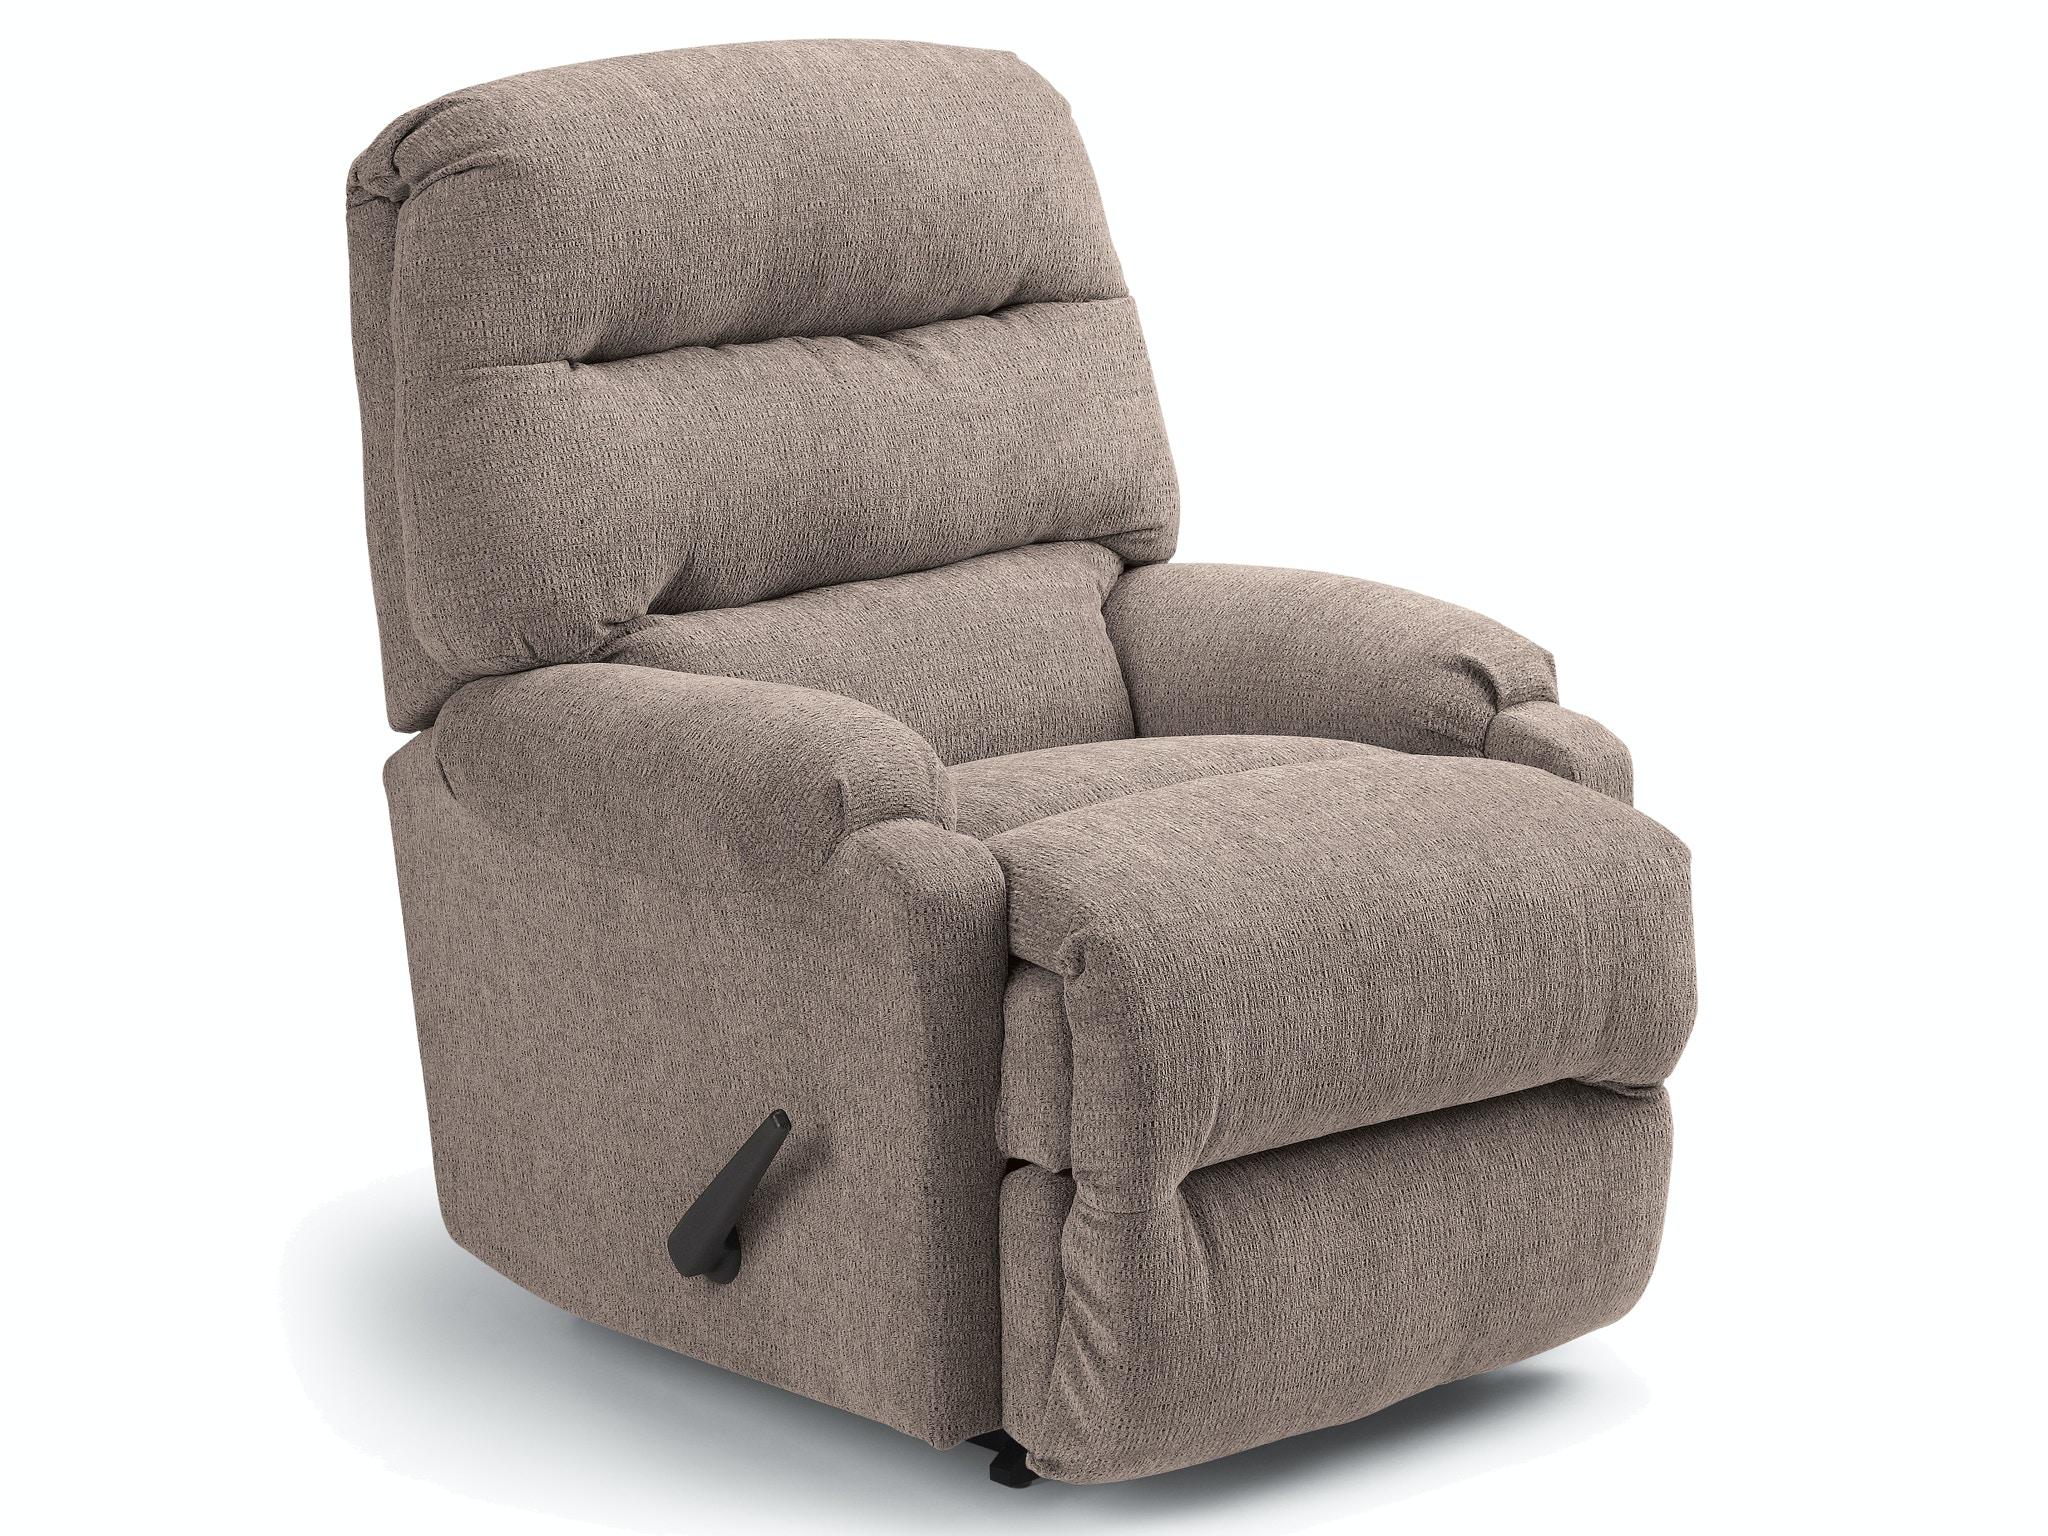 Best Home Furnishings Living Room Recliner 9AW64 Bacons